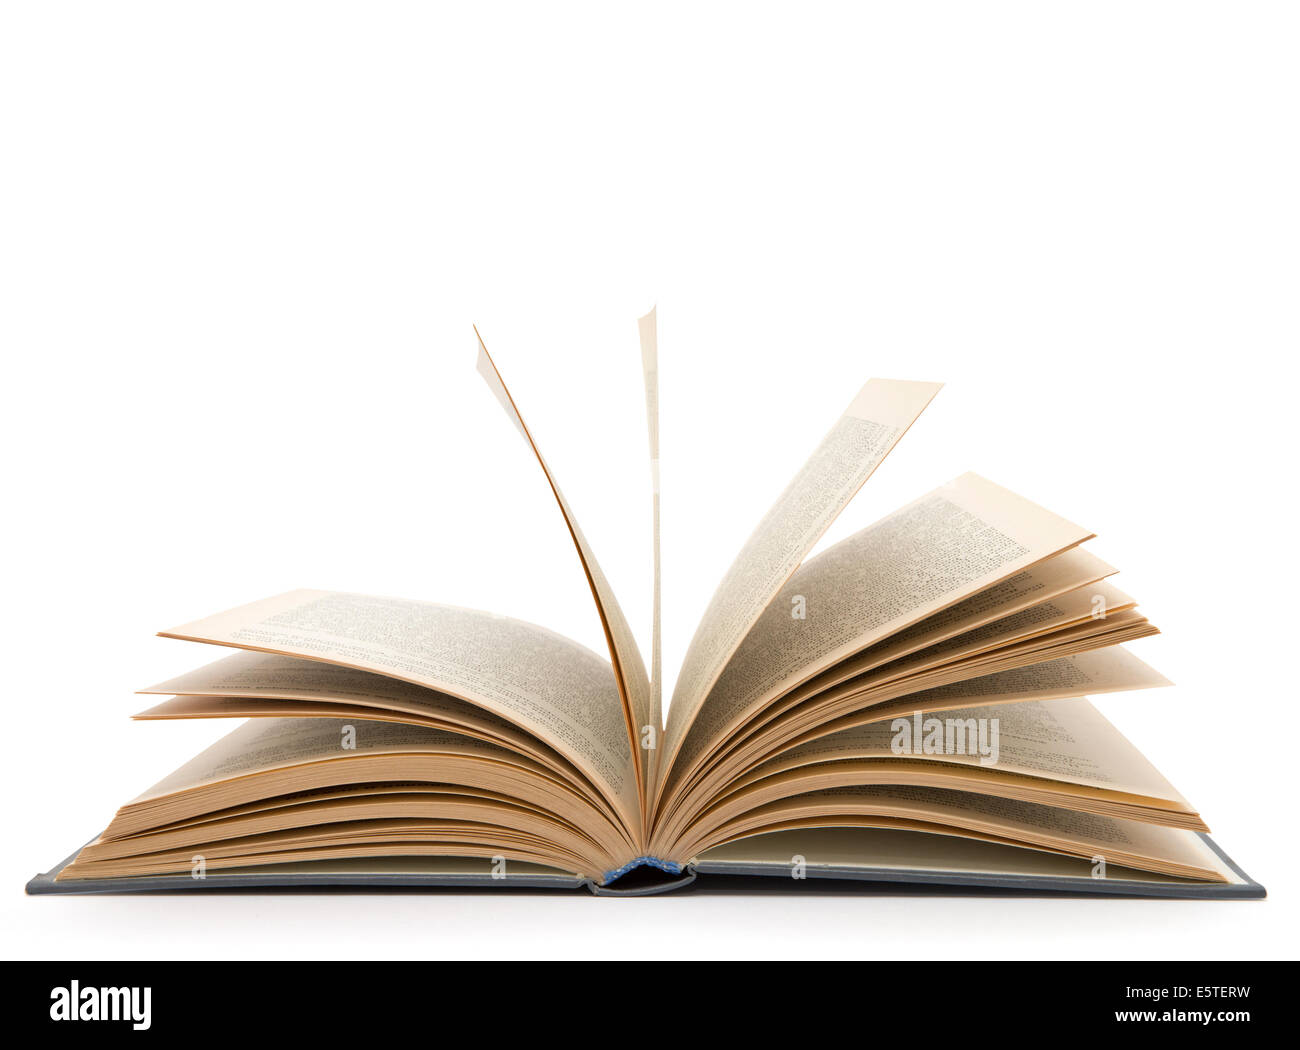 Open book isolated on white background - Stock Image